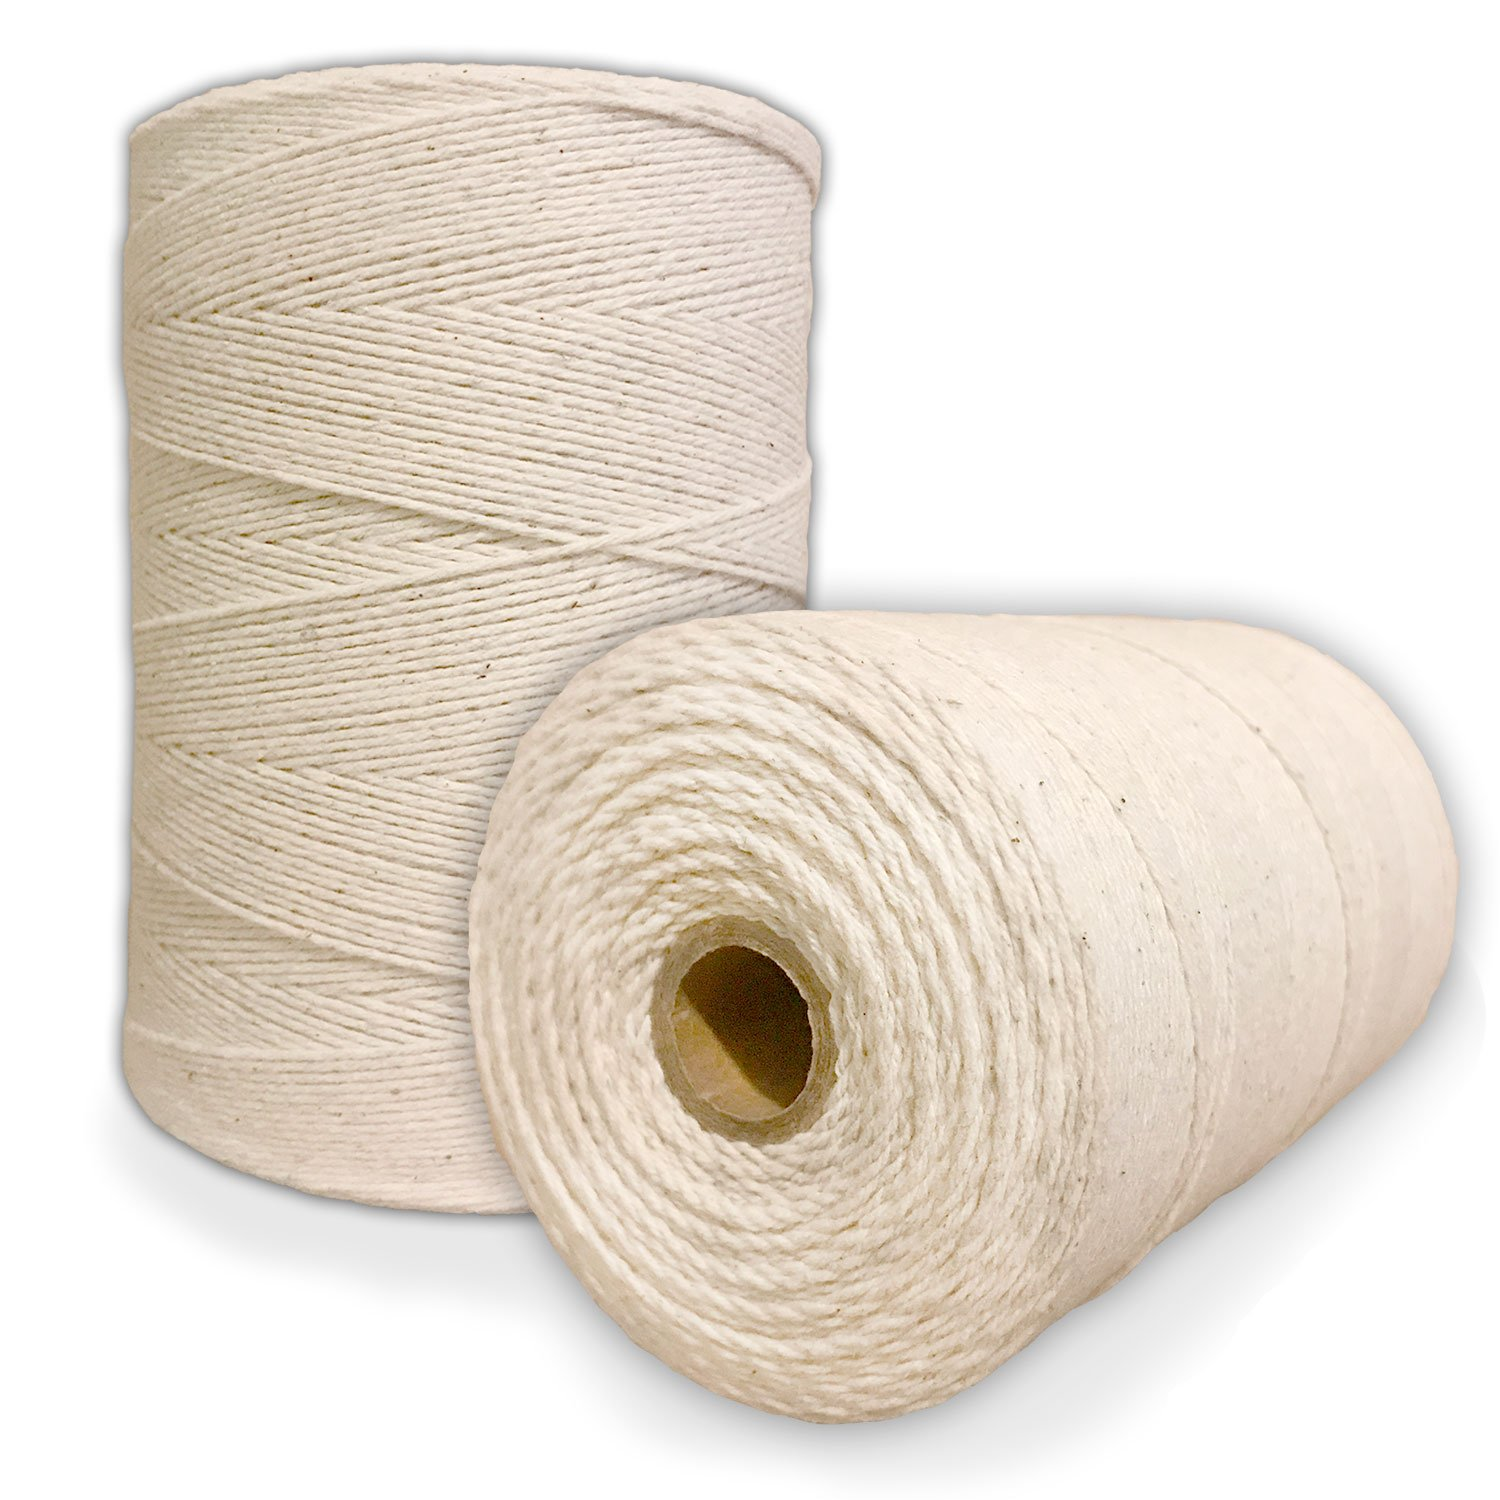 Durable Loom Warp Thread (Natural/Off White), 8/4 Warp Yarn (800 Yards), Perfect for Weaving: Carpet, Tapestry, Rug, Blanket or Pattern - Warping Thread for Any Loom